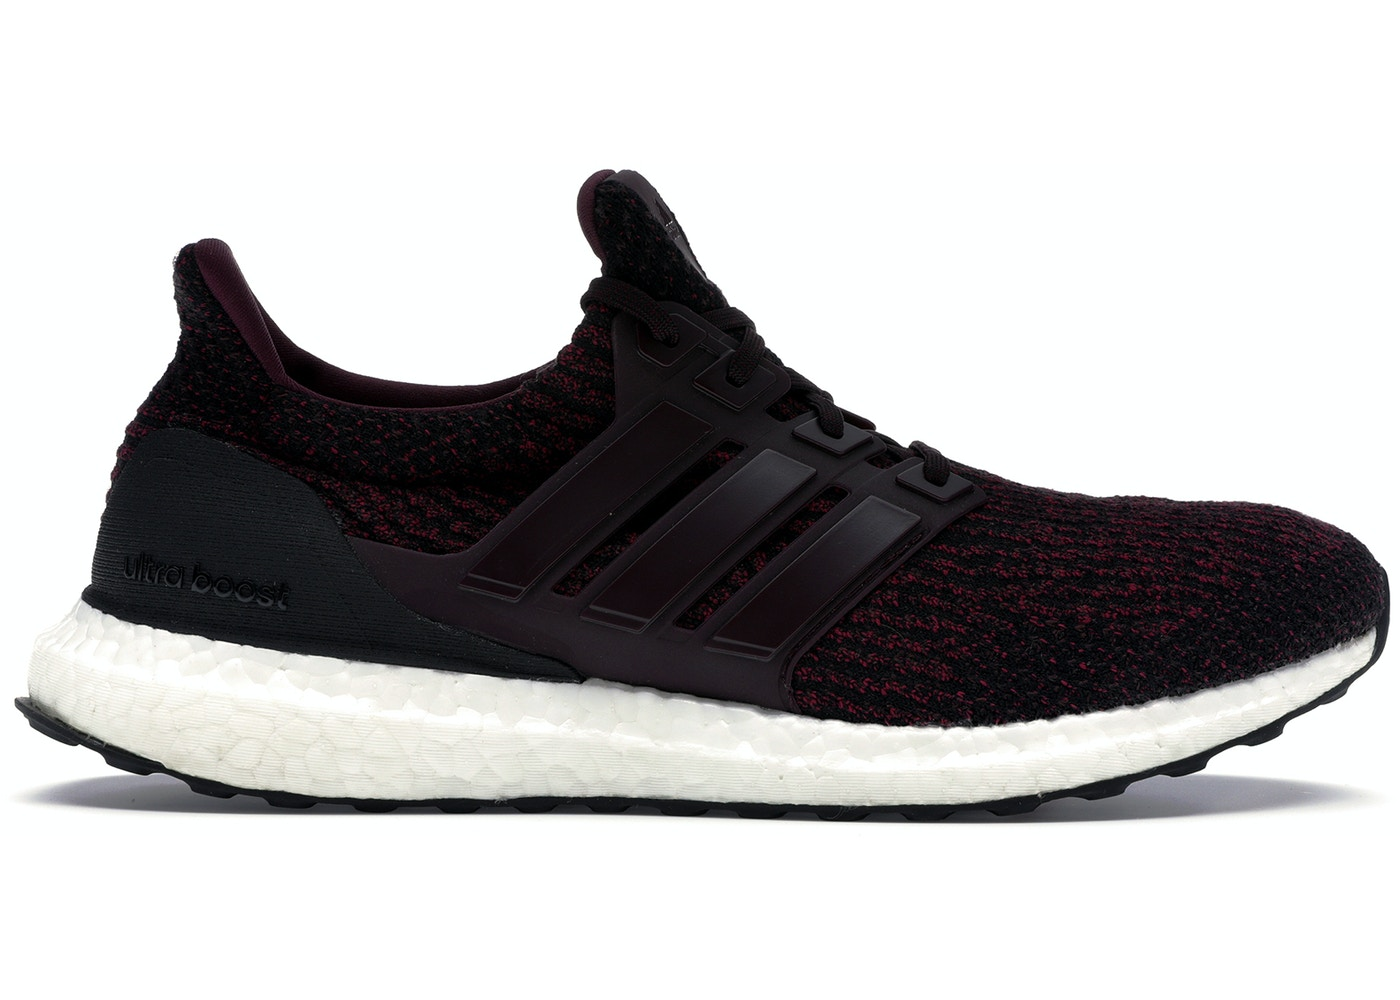 f1d689dab Buy adidas Ultra Boost Size 15 Shoes   Deadstock Sneakers